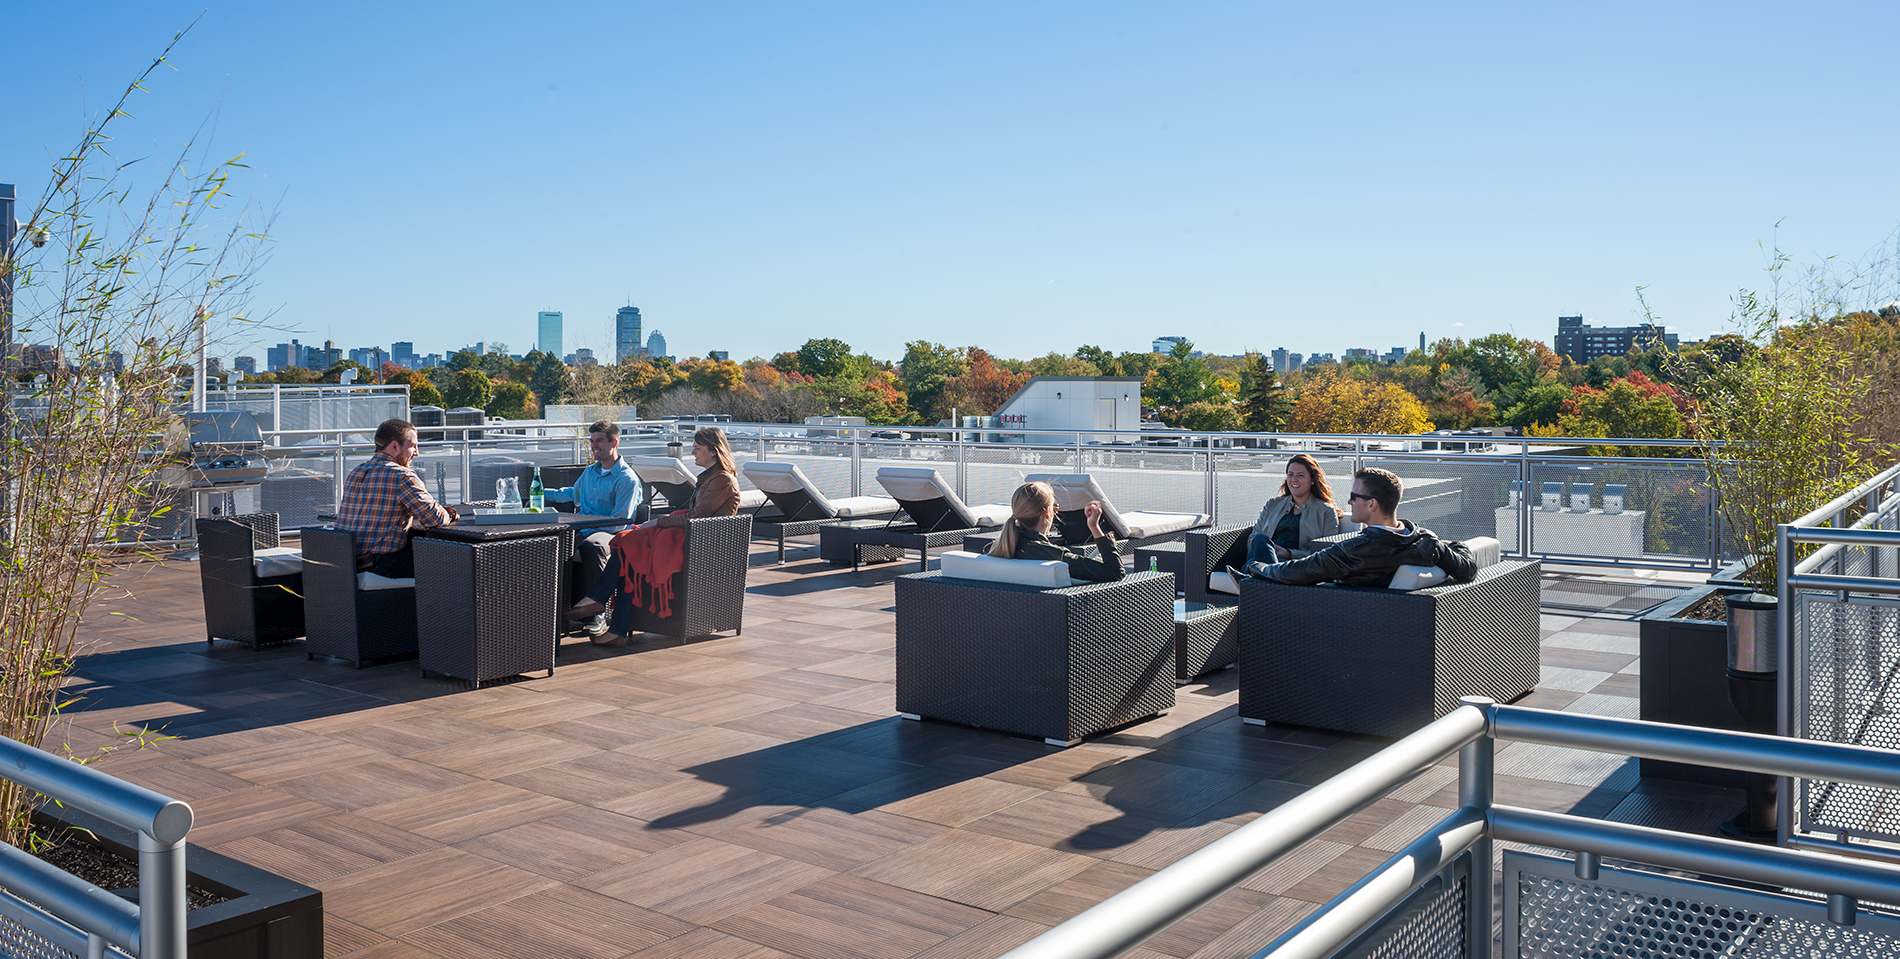 We enjoy great views of Boston from the Allston Green District's Eco rooftop. Self-watering planters filled with Clumping Bamboo, ornamental grasses, and trailing vines screen rooftop utilities.